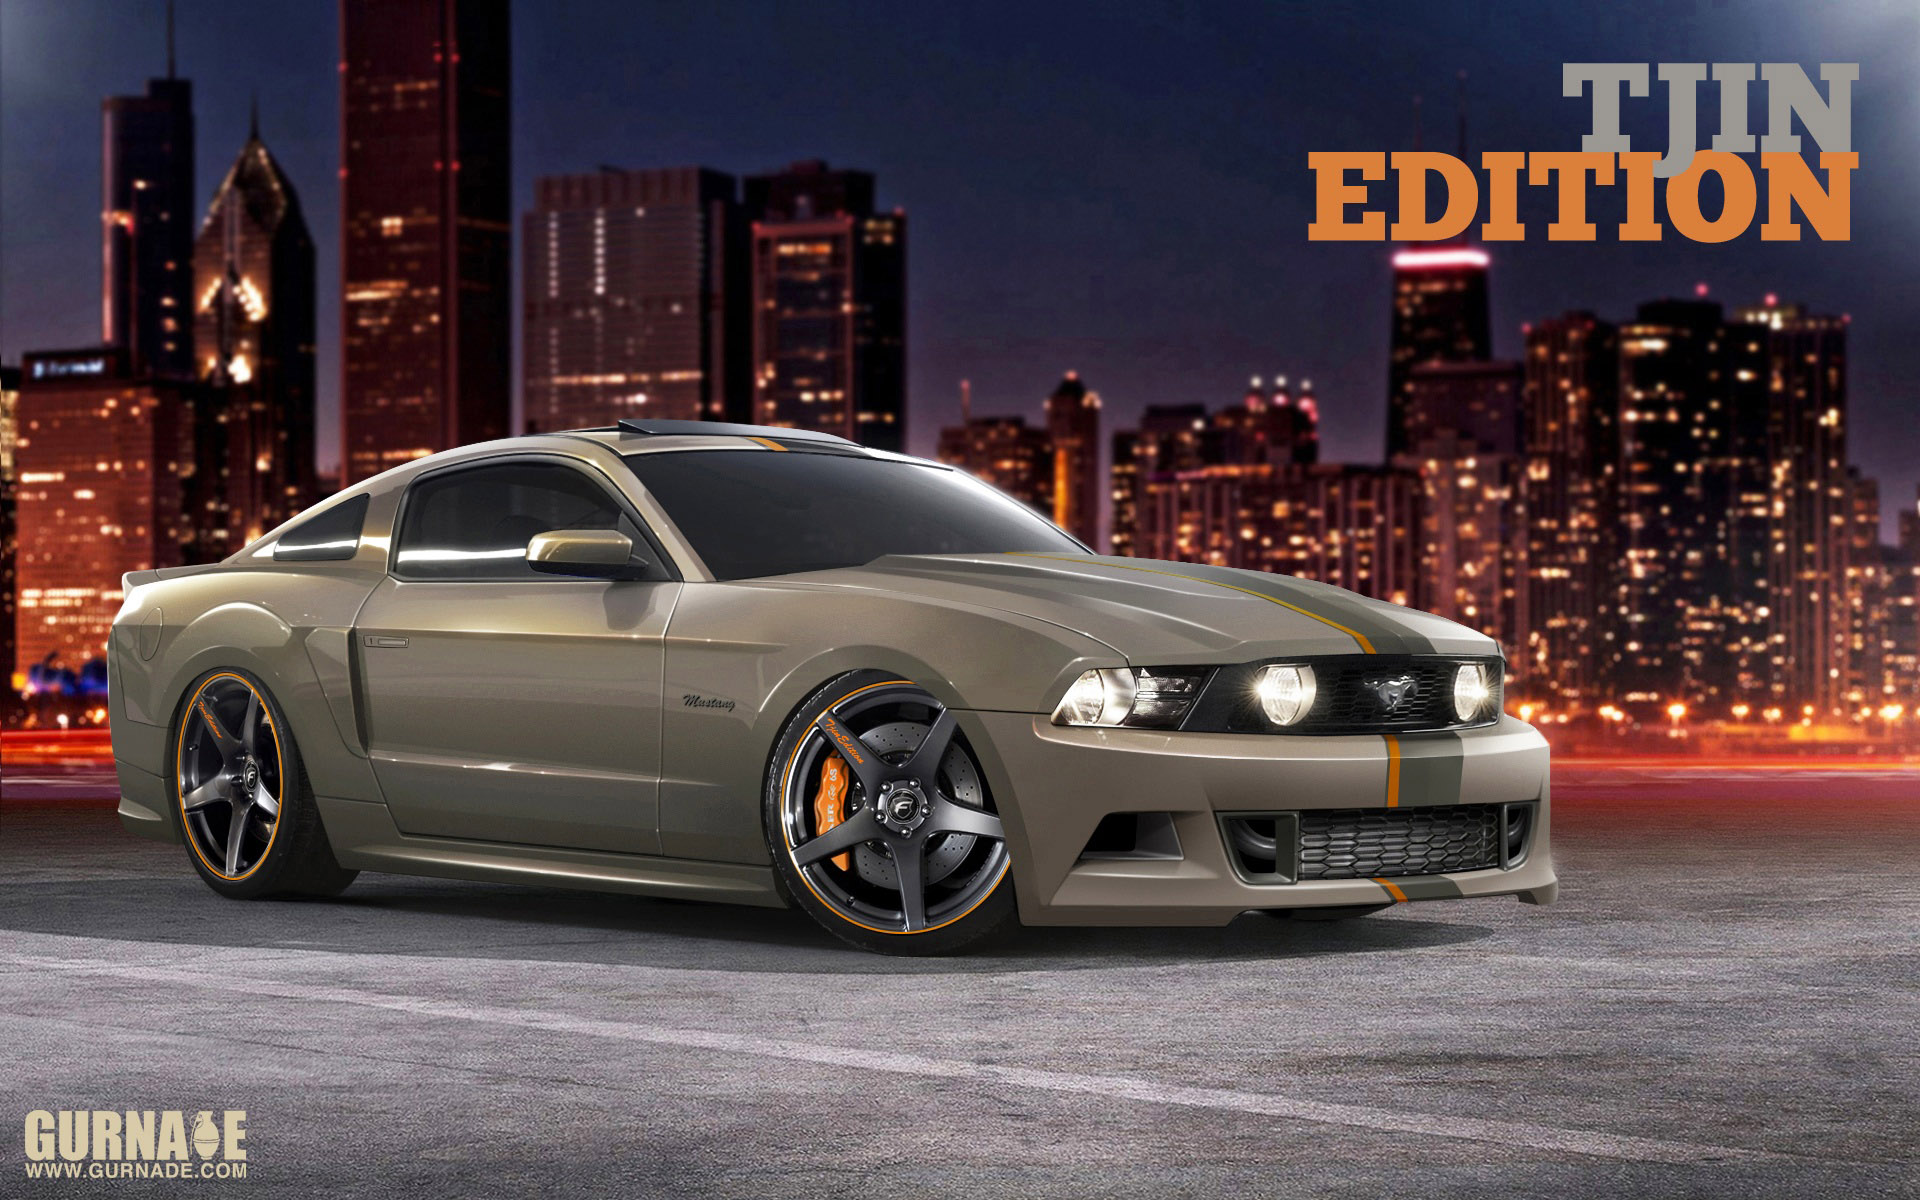 first look tjin edition mustang2011 Ford Mustang Gt California Special Further Ford Wiring Diagrams #5